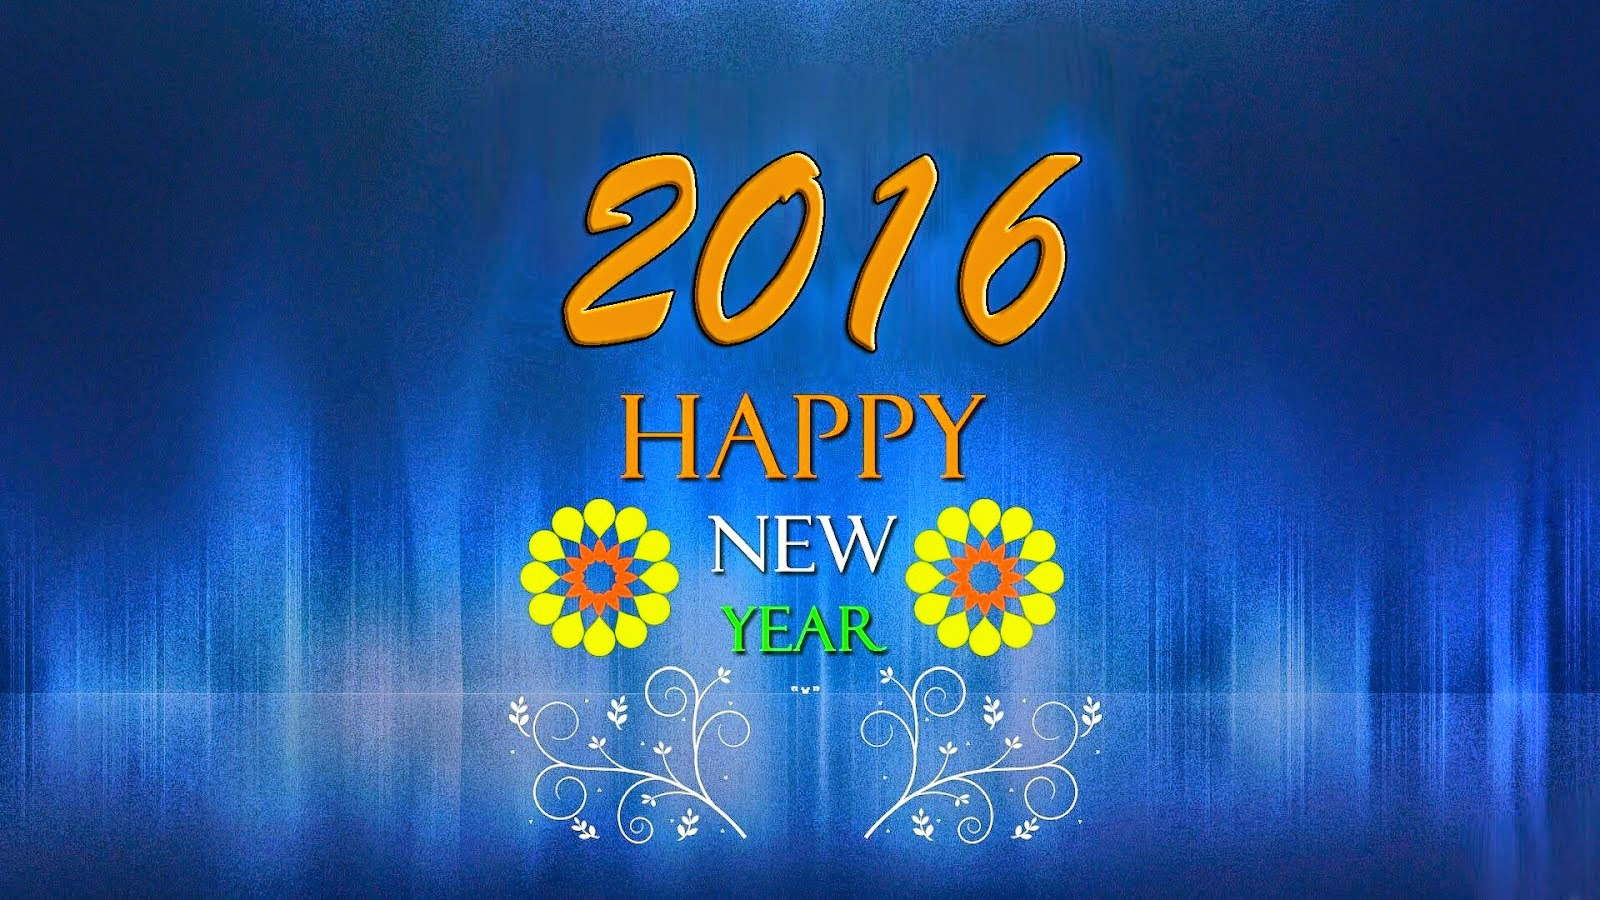 3D Wallpapers Happy New Year 2016 Download 3D Wallpapers 1600x900